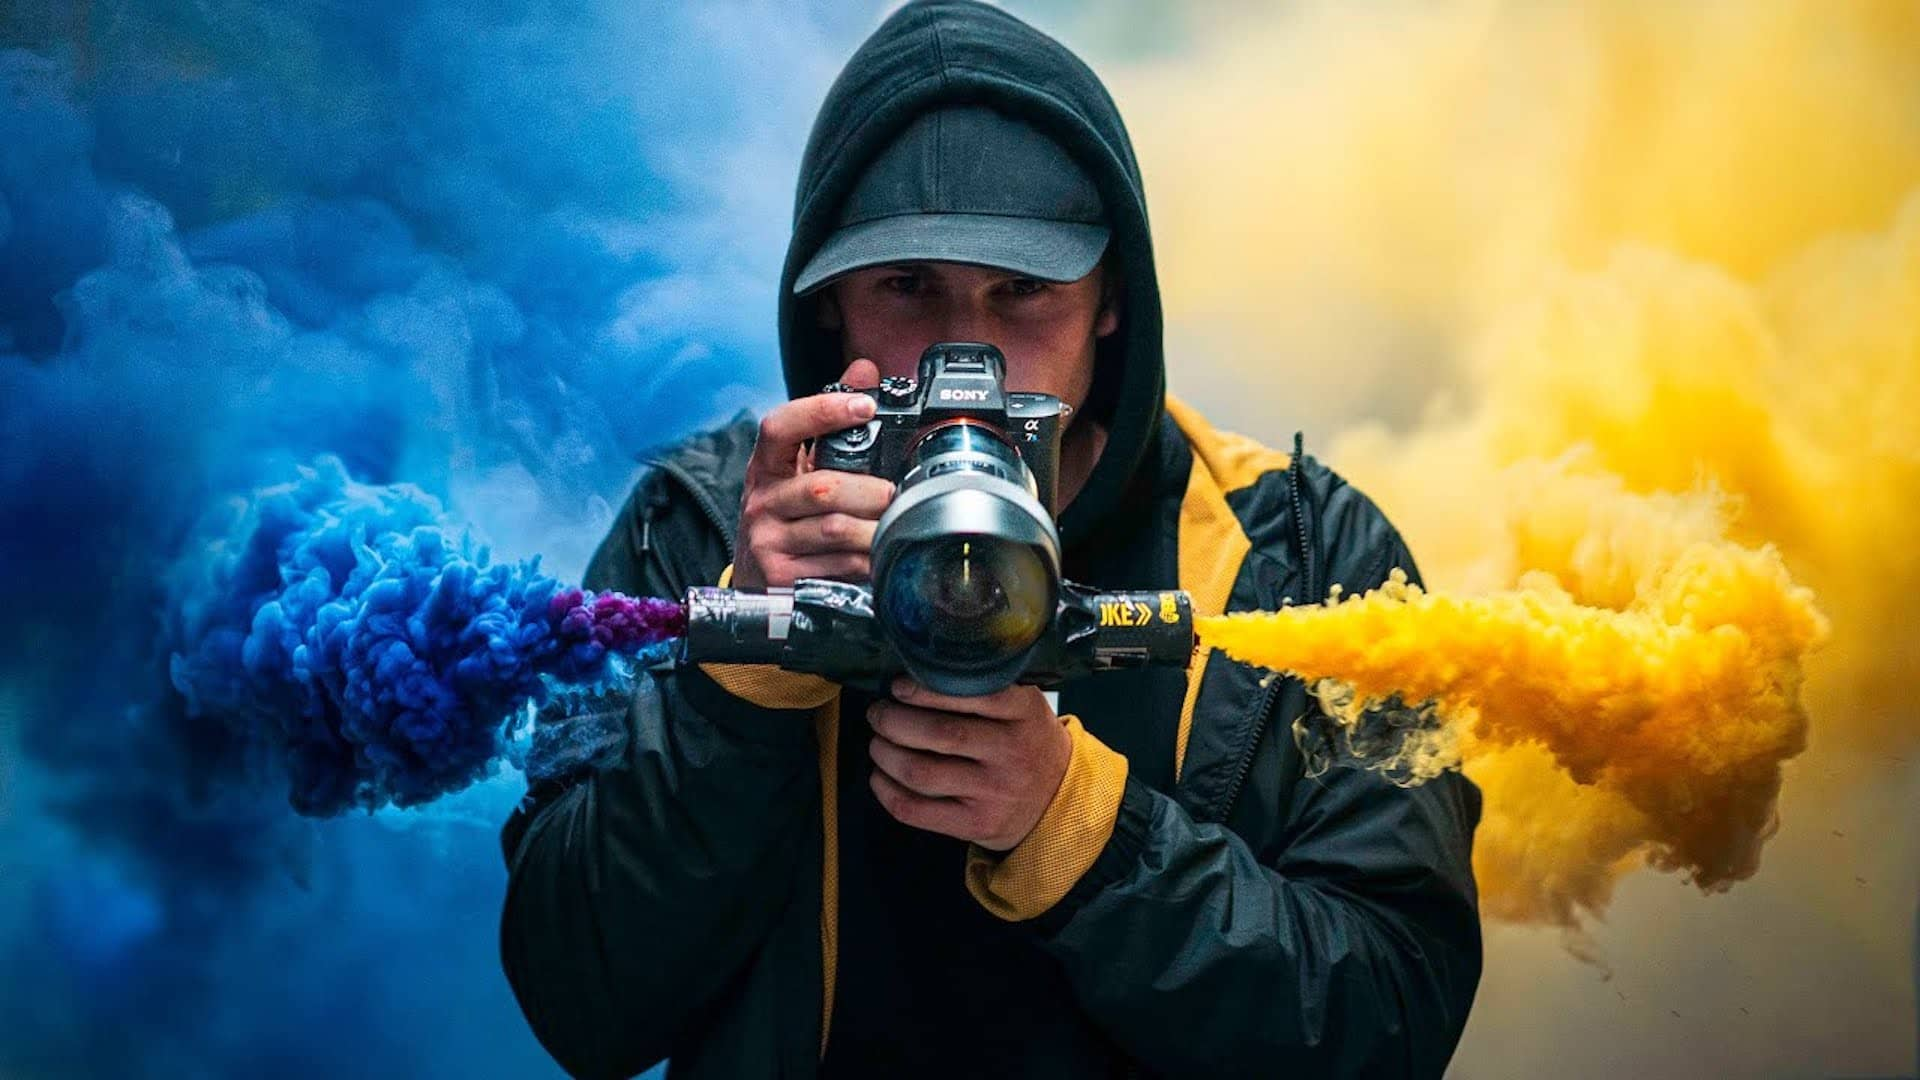 Color Smoke Bomb Photography Ideas - Pictures - Sunny 16